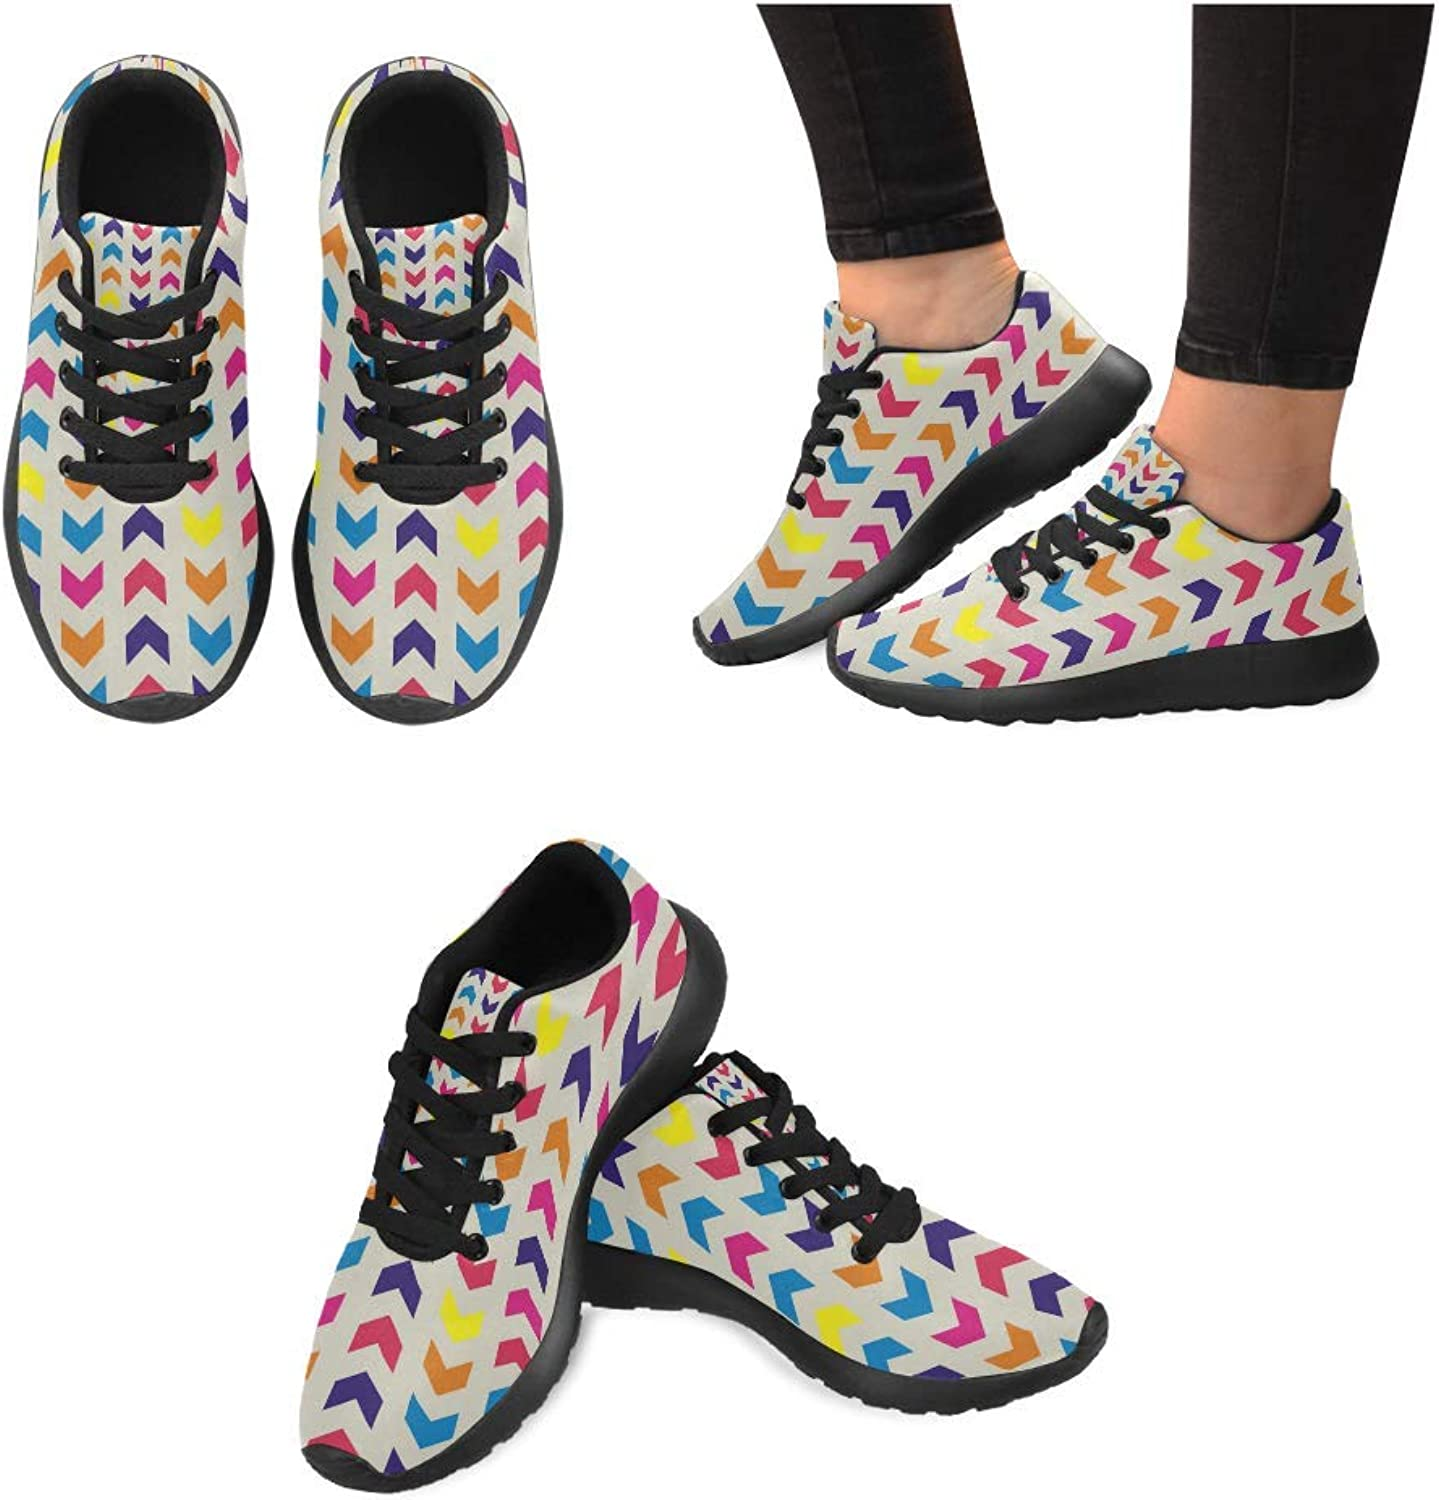 Women Lightweight Casual Sneaker Running shoes Chevron Arrow Prints